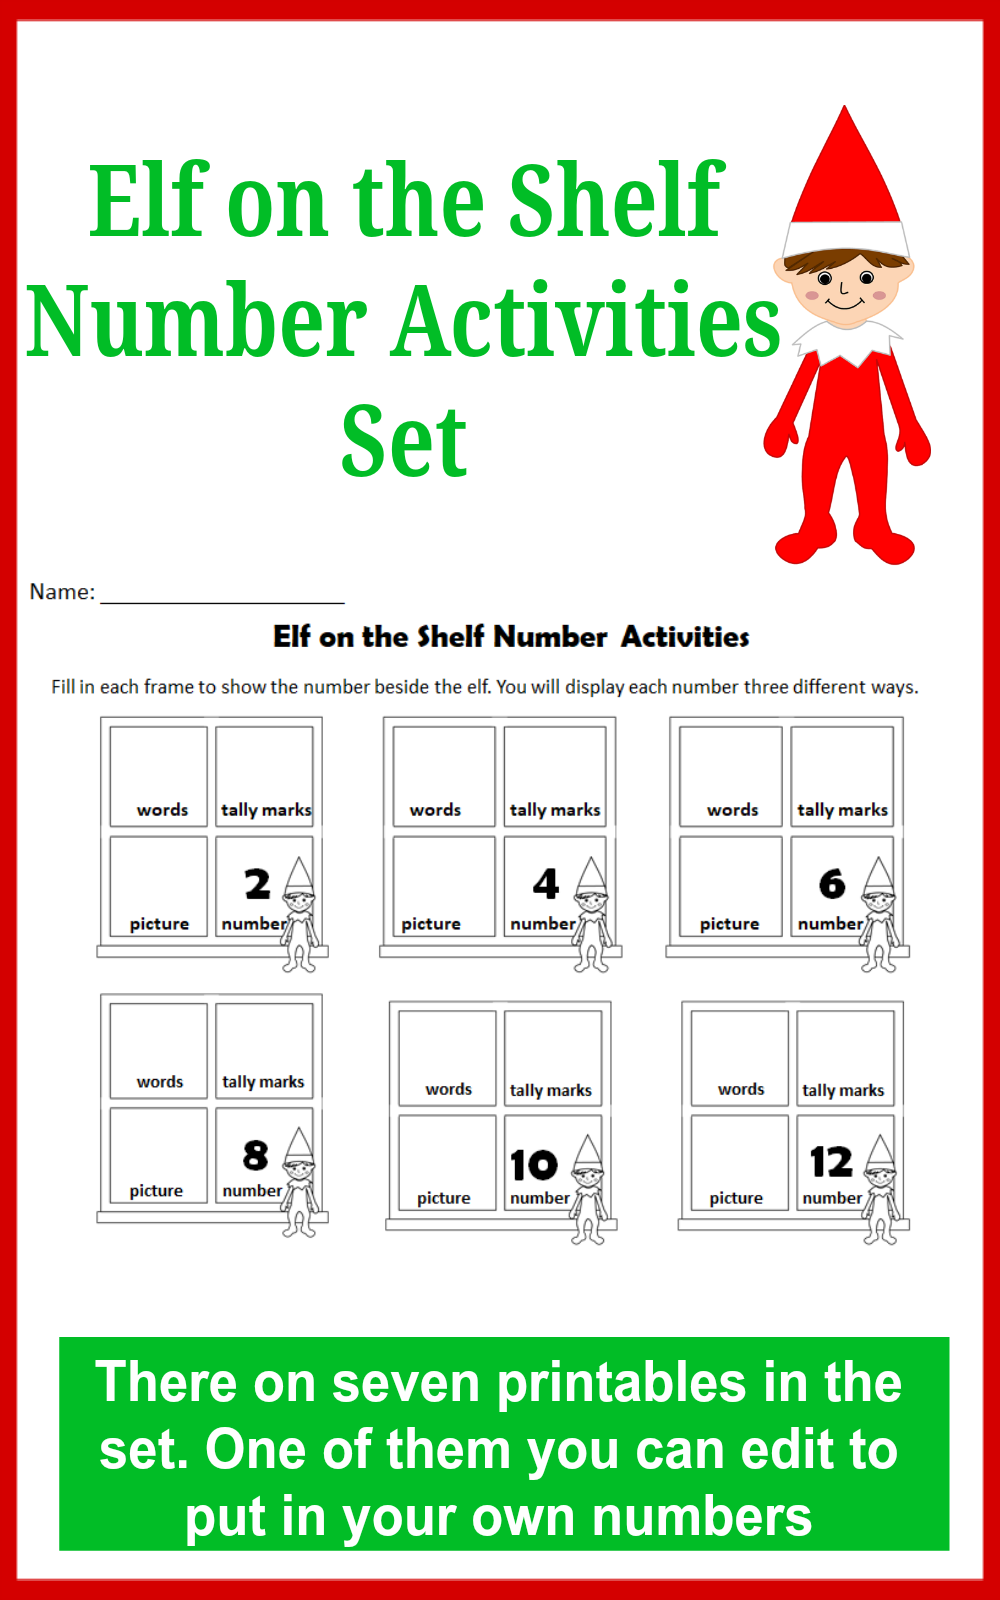 Elf on the Shelf Number Activities Set for Kids - This set explores ...